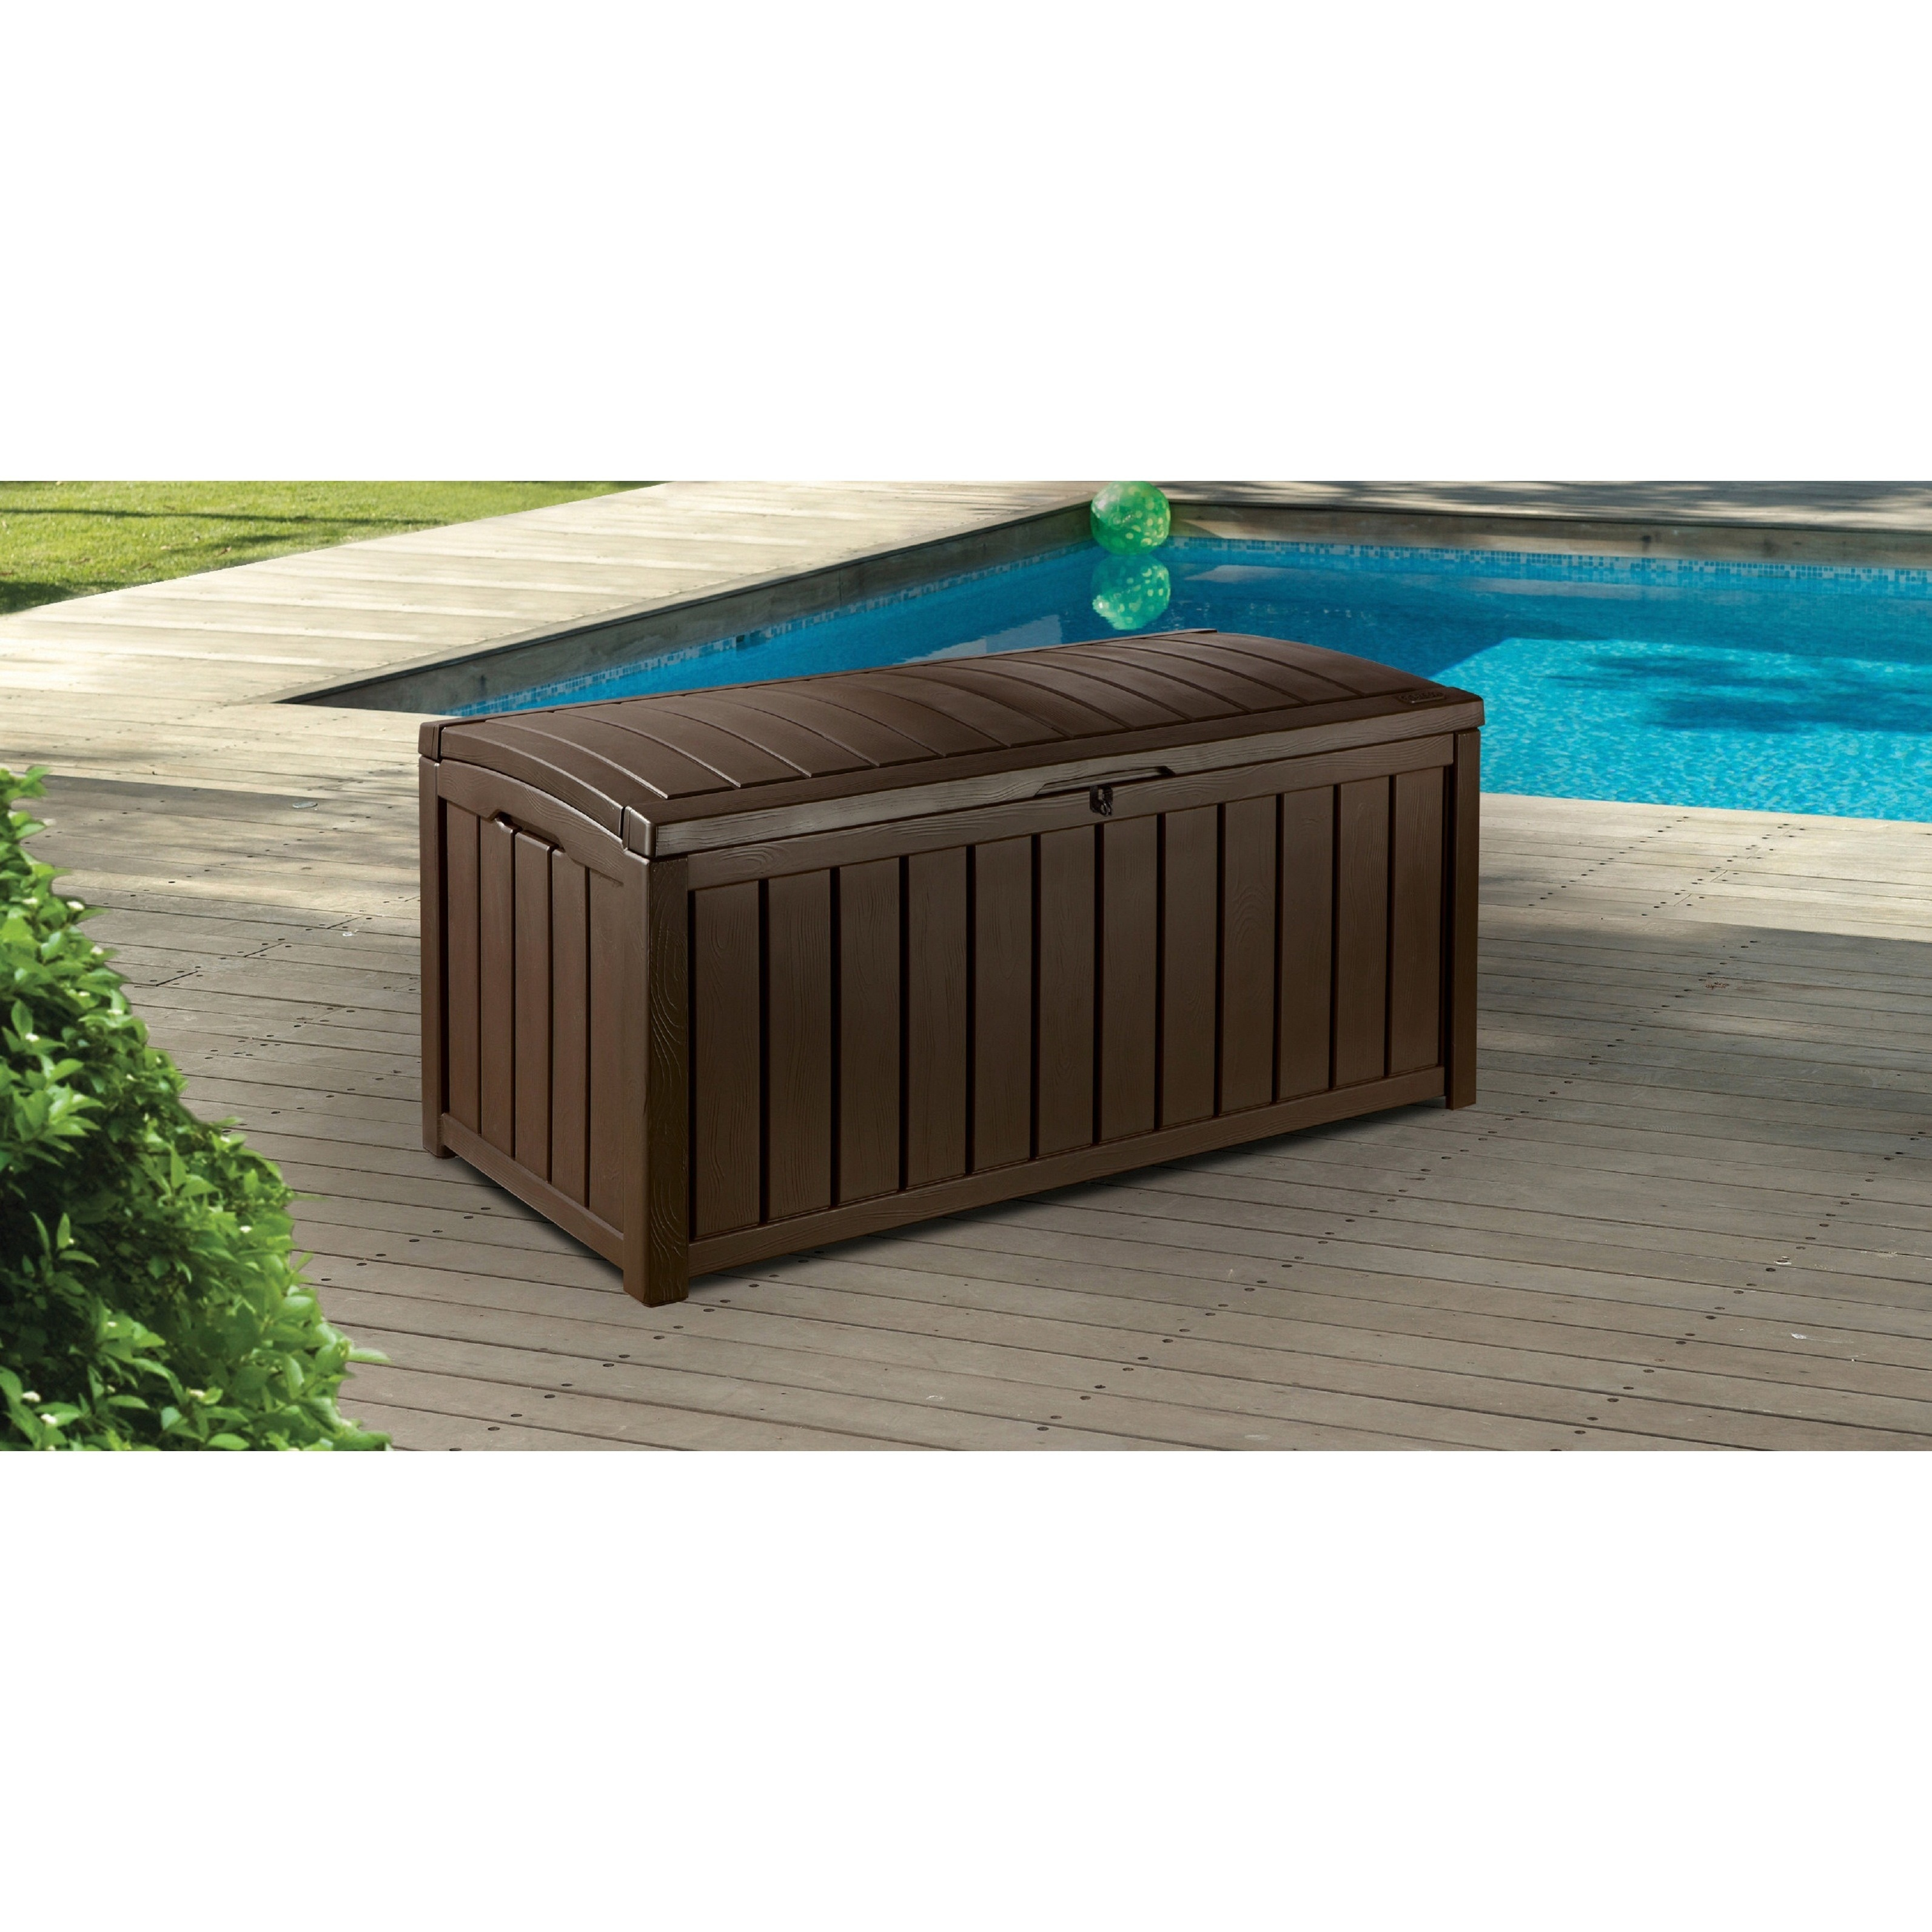 Brown Plastic Outdoor Patio Deck Storage Box - Free Shipping Today - Overstock.com - 12306128  sc 1 st  Overstock.com & Shop Keter Glenwood 101 gal. Brown Plastic Outdoor Patio Deck ...